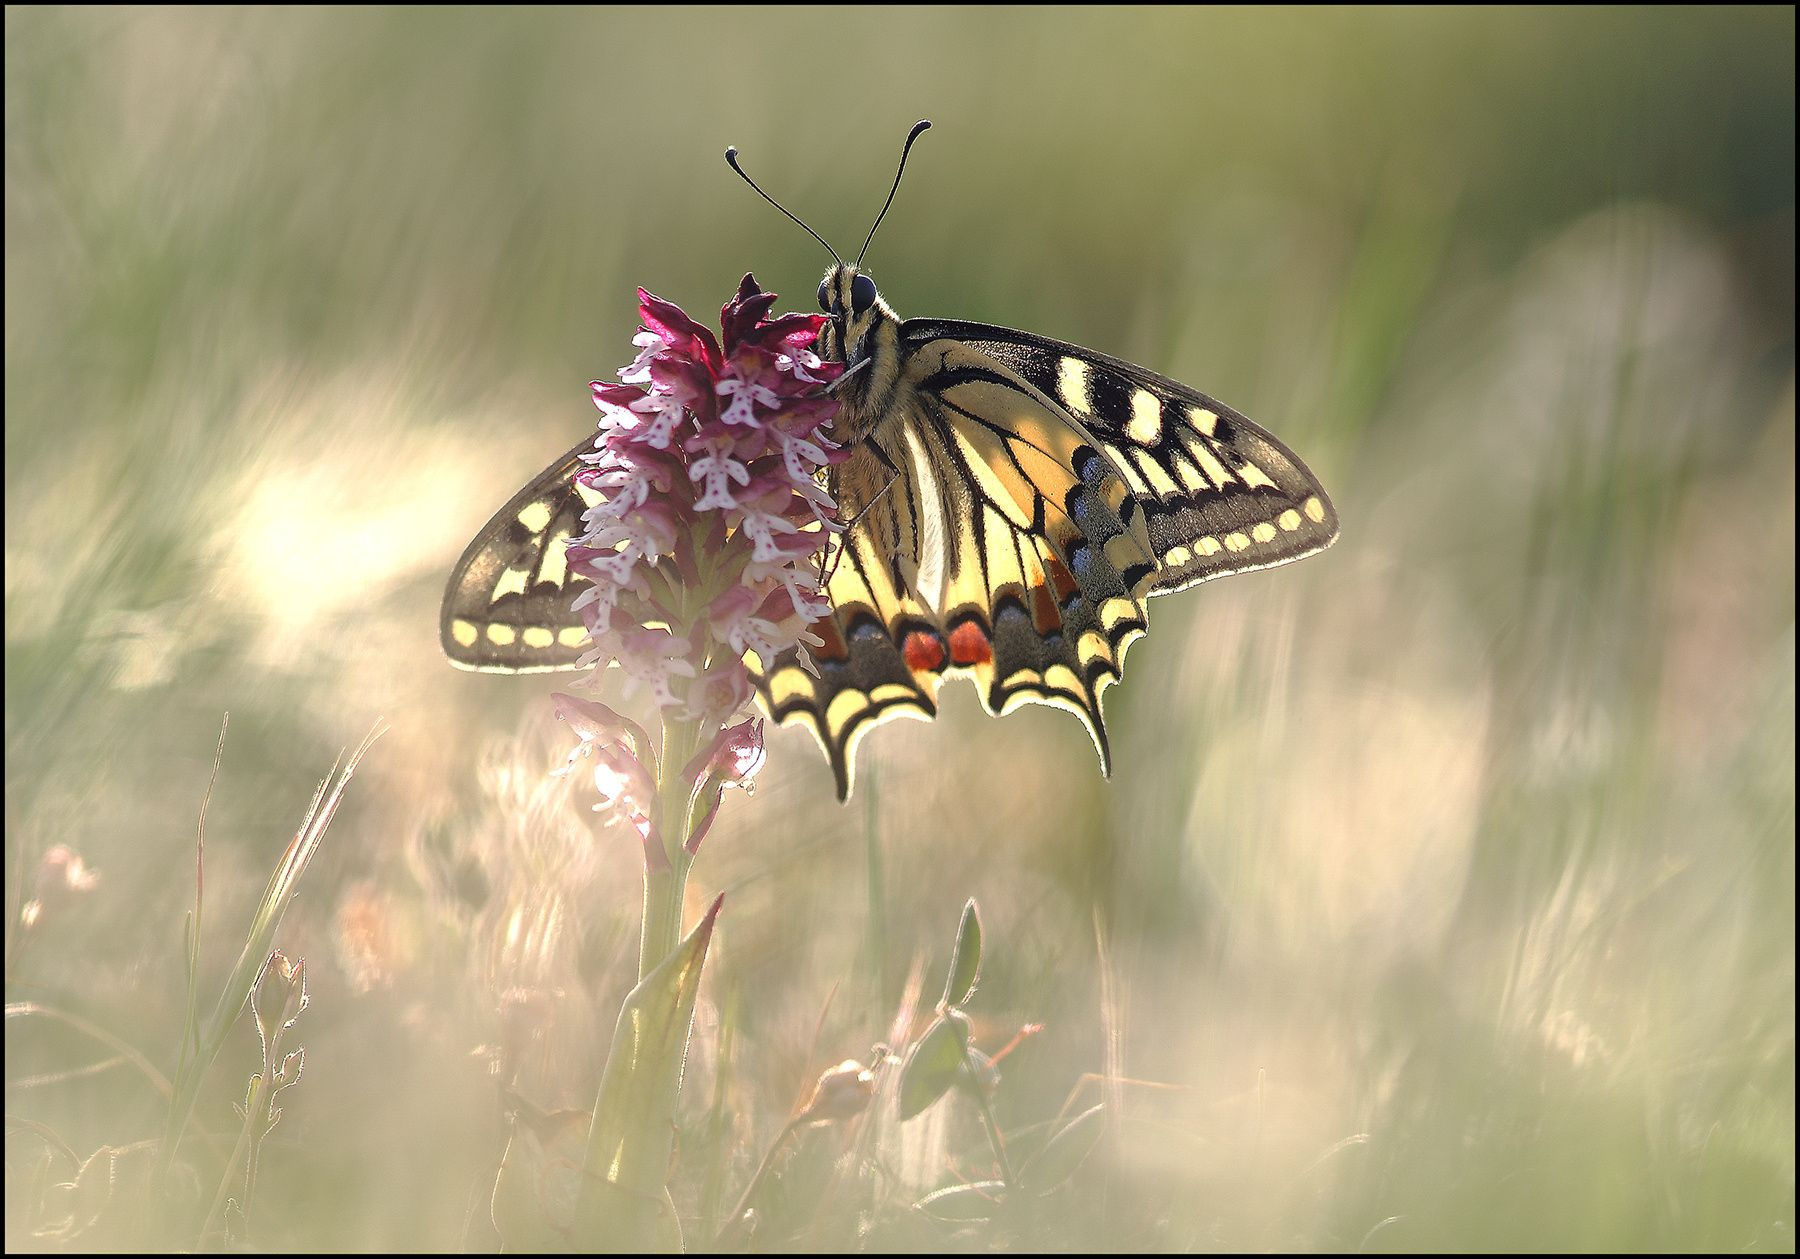 machaon by melchiorre pizzitola on 500px